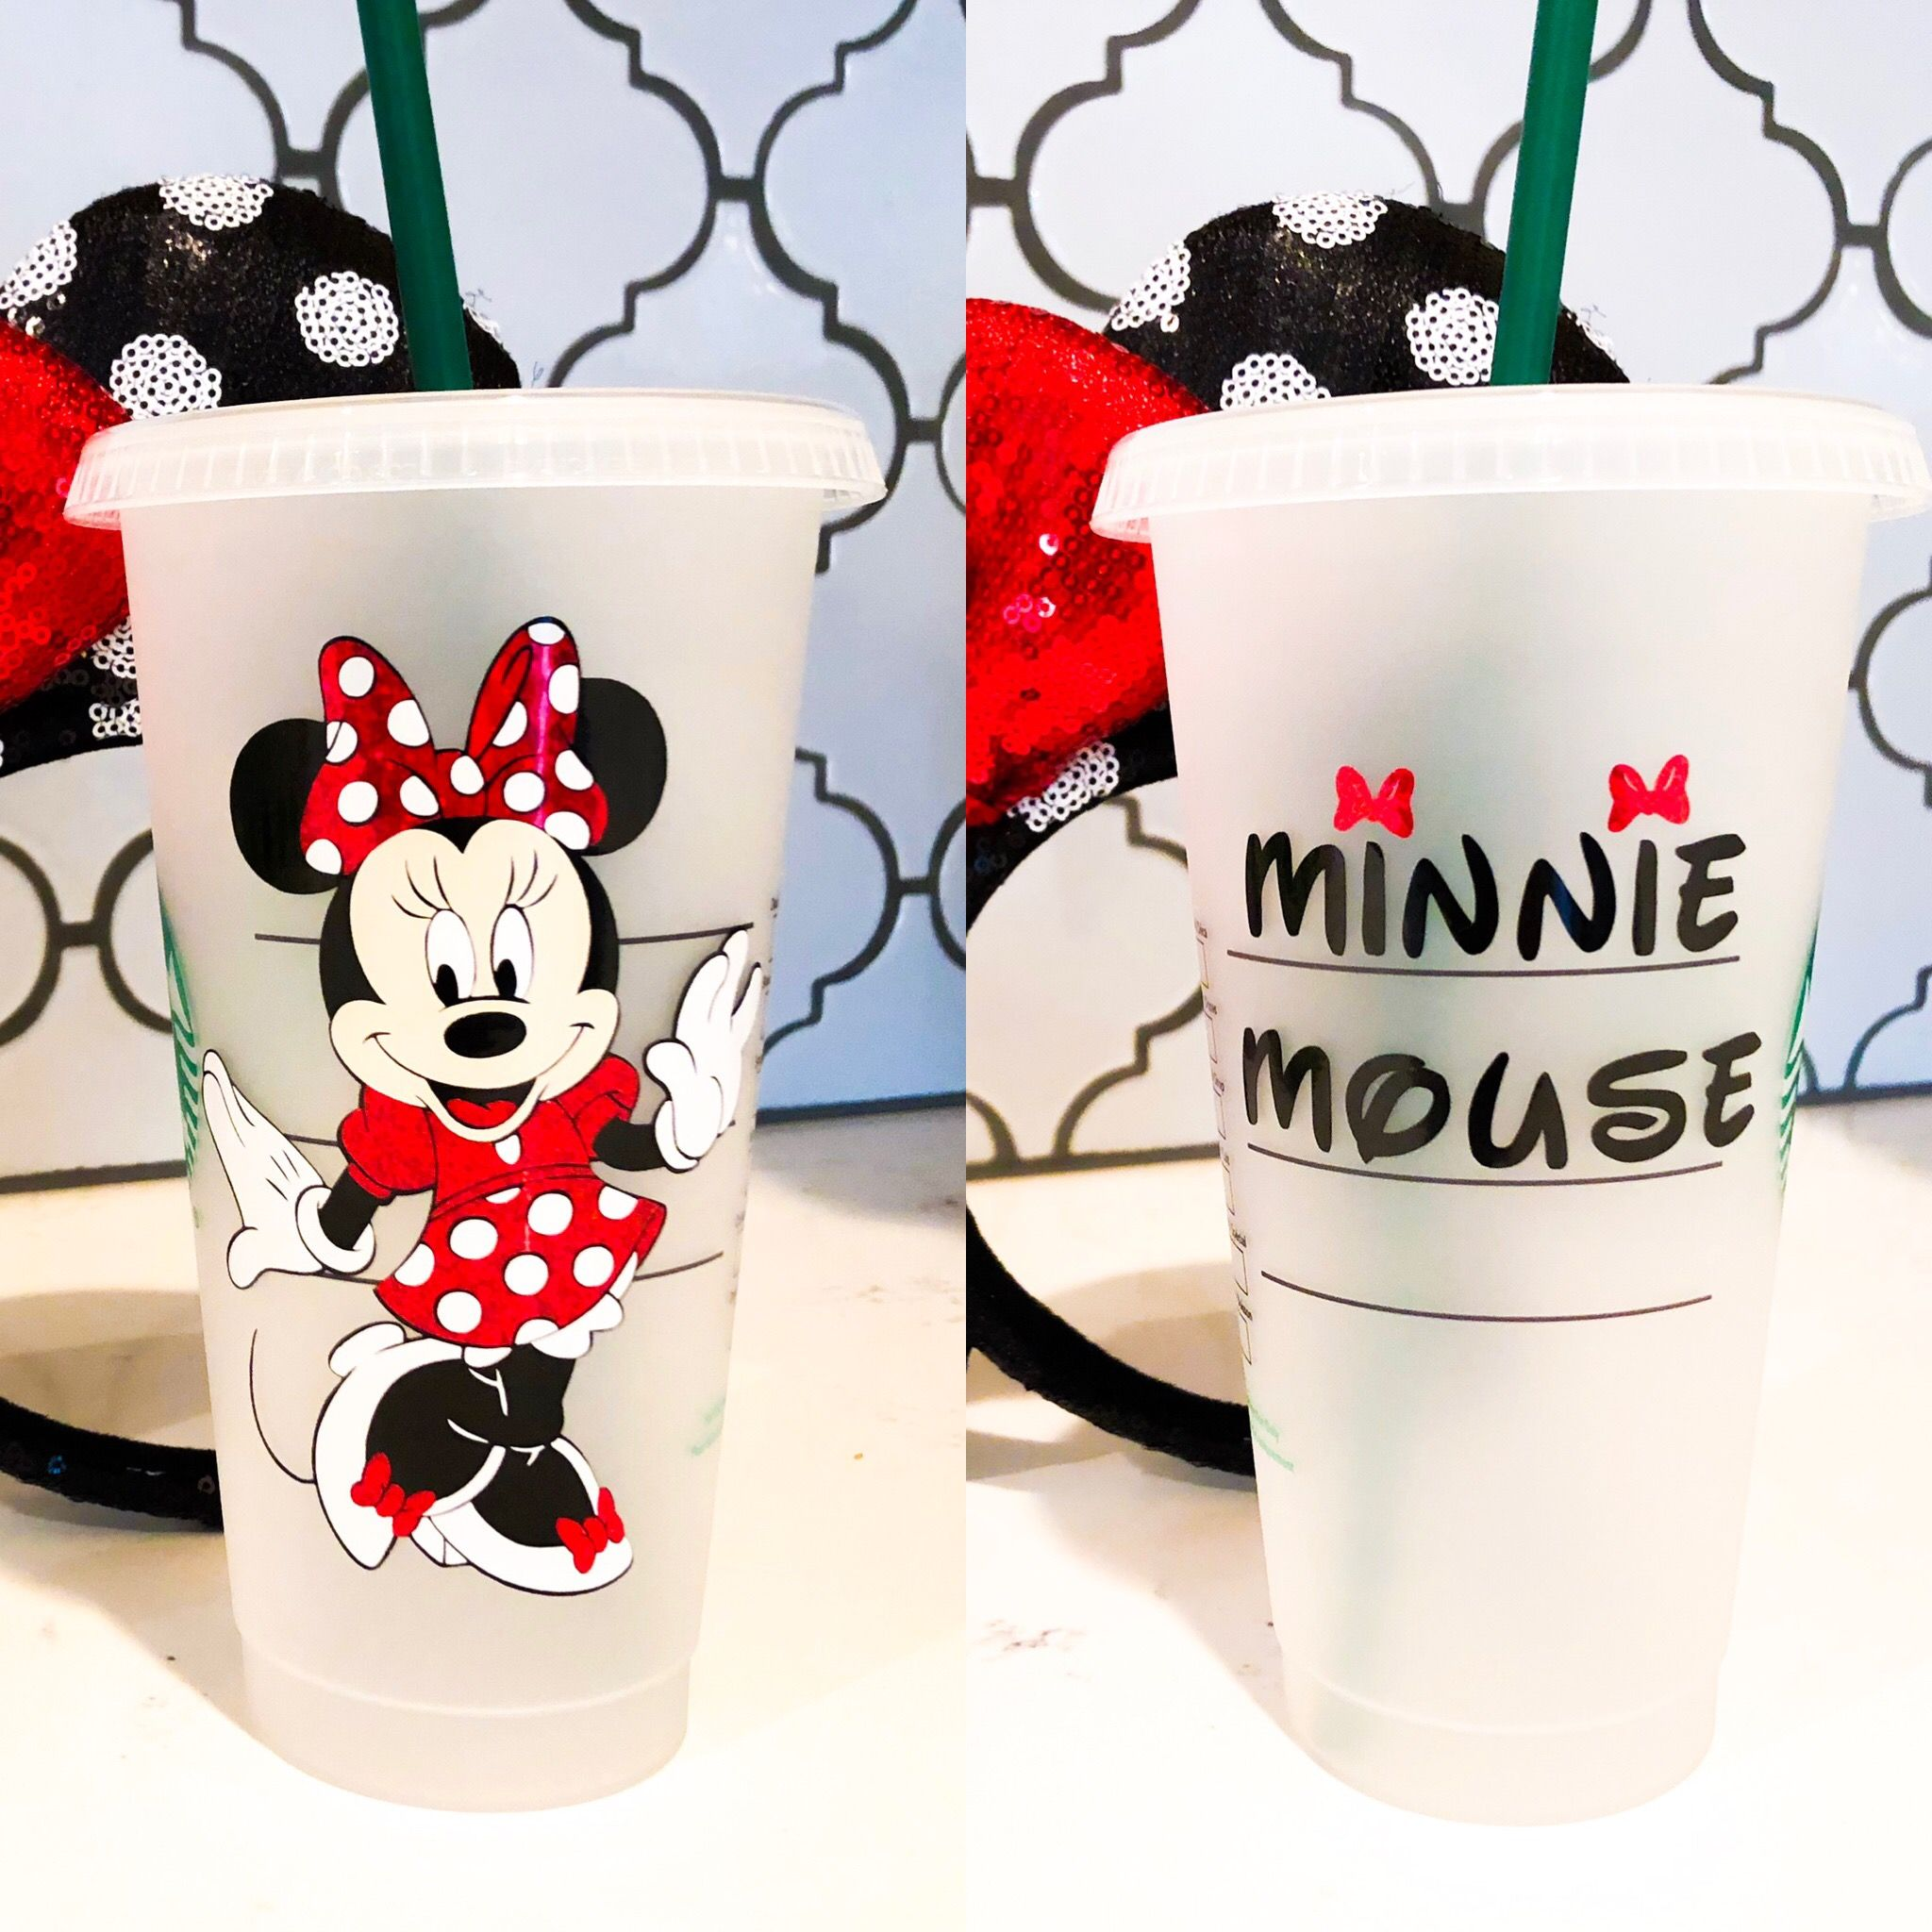 Last Chance Mickey Mouse Inspired Reusable Disney Starbucks Cup For Cold Beverages Personalized Or Character Name Starbucks Cups Personalized Starbucks Cup Custom Starbucks Cup